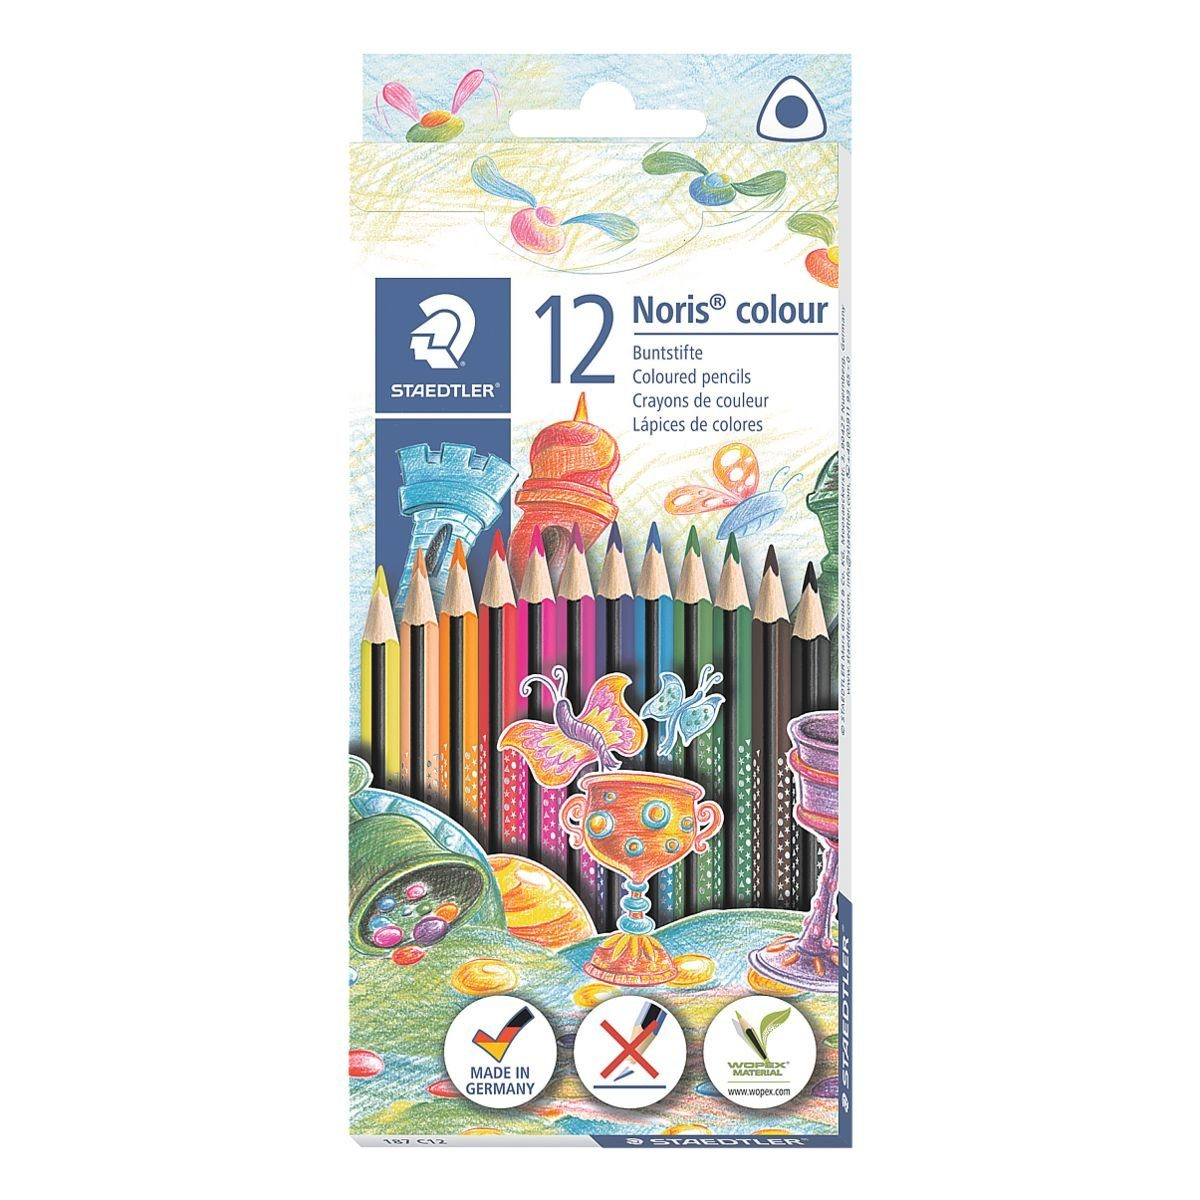 STAEDTLER Dreikant-Buntstifte »Noris colour«